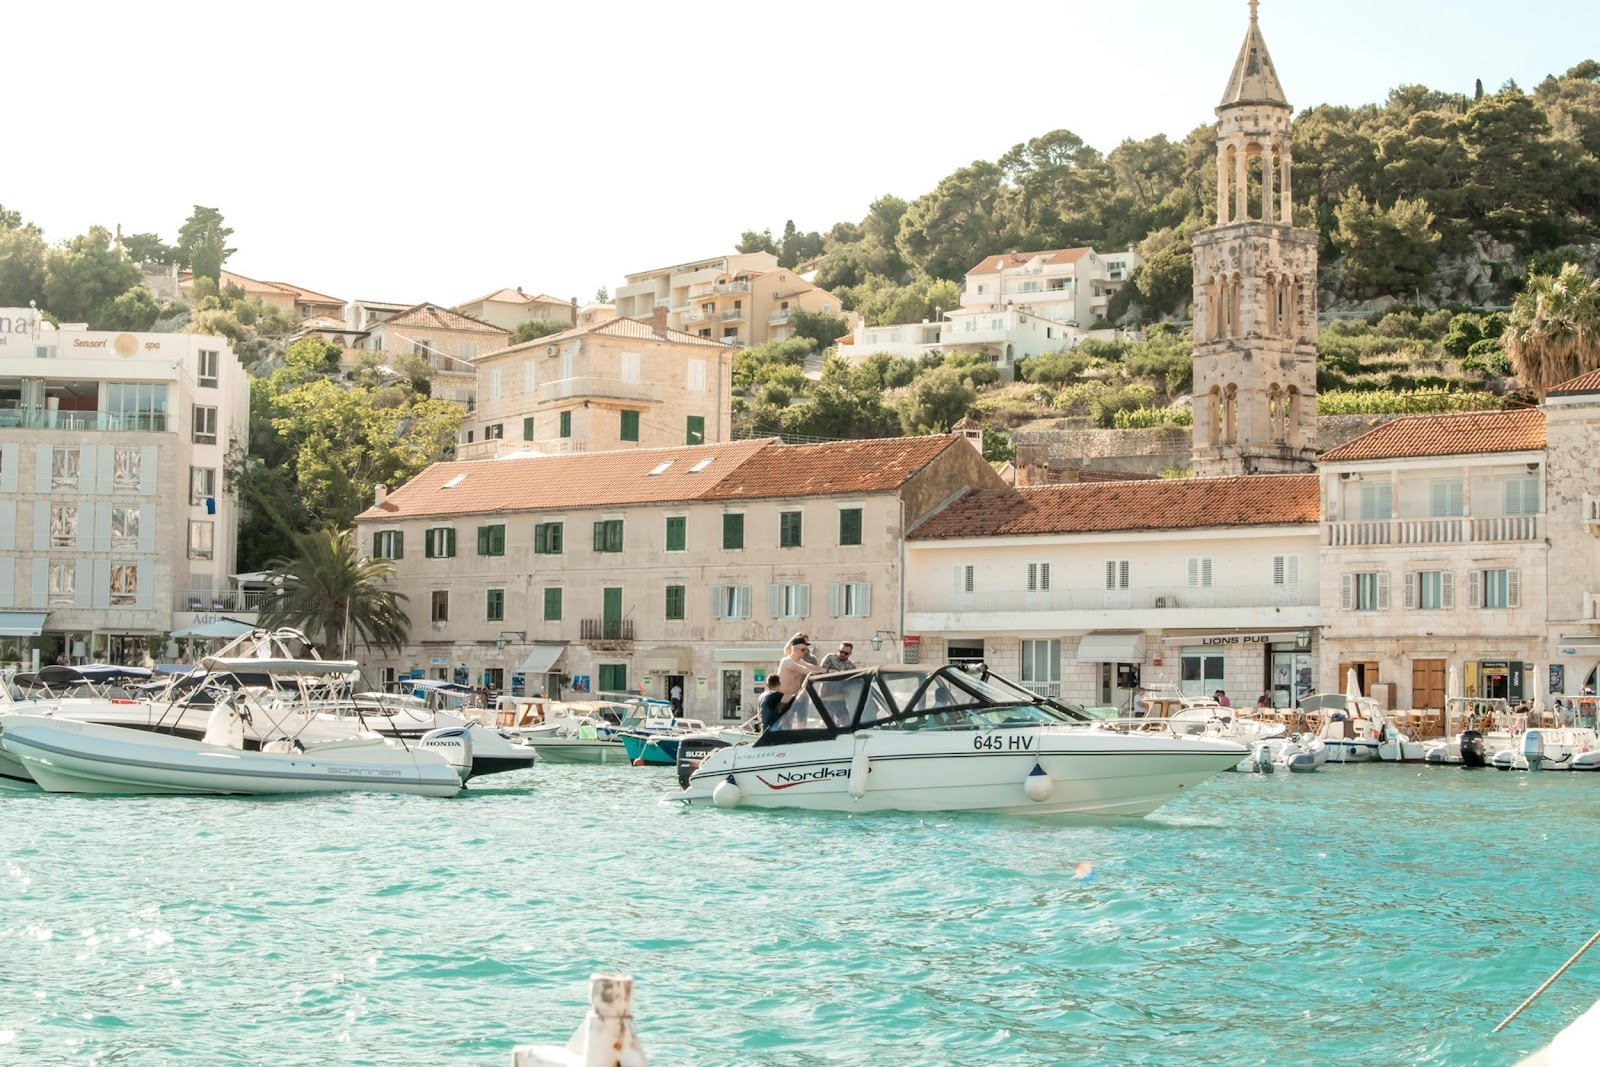 Latest news about Croatia's digital nomad visa plans for remote workers, freelancers and internet entrepreneurs.